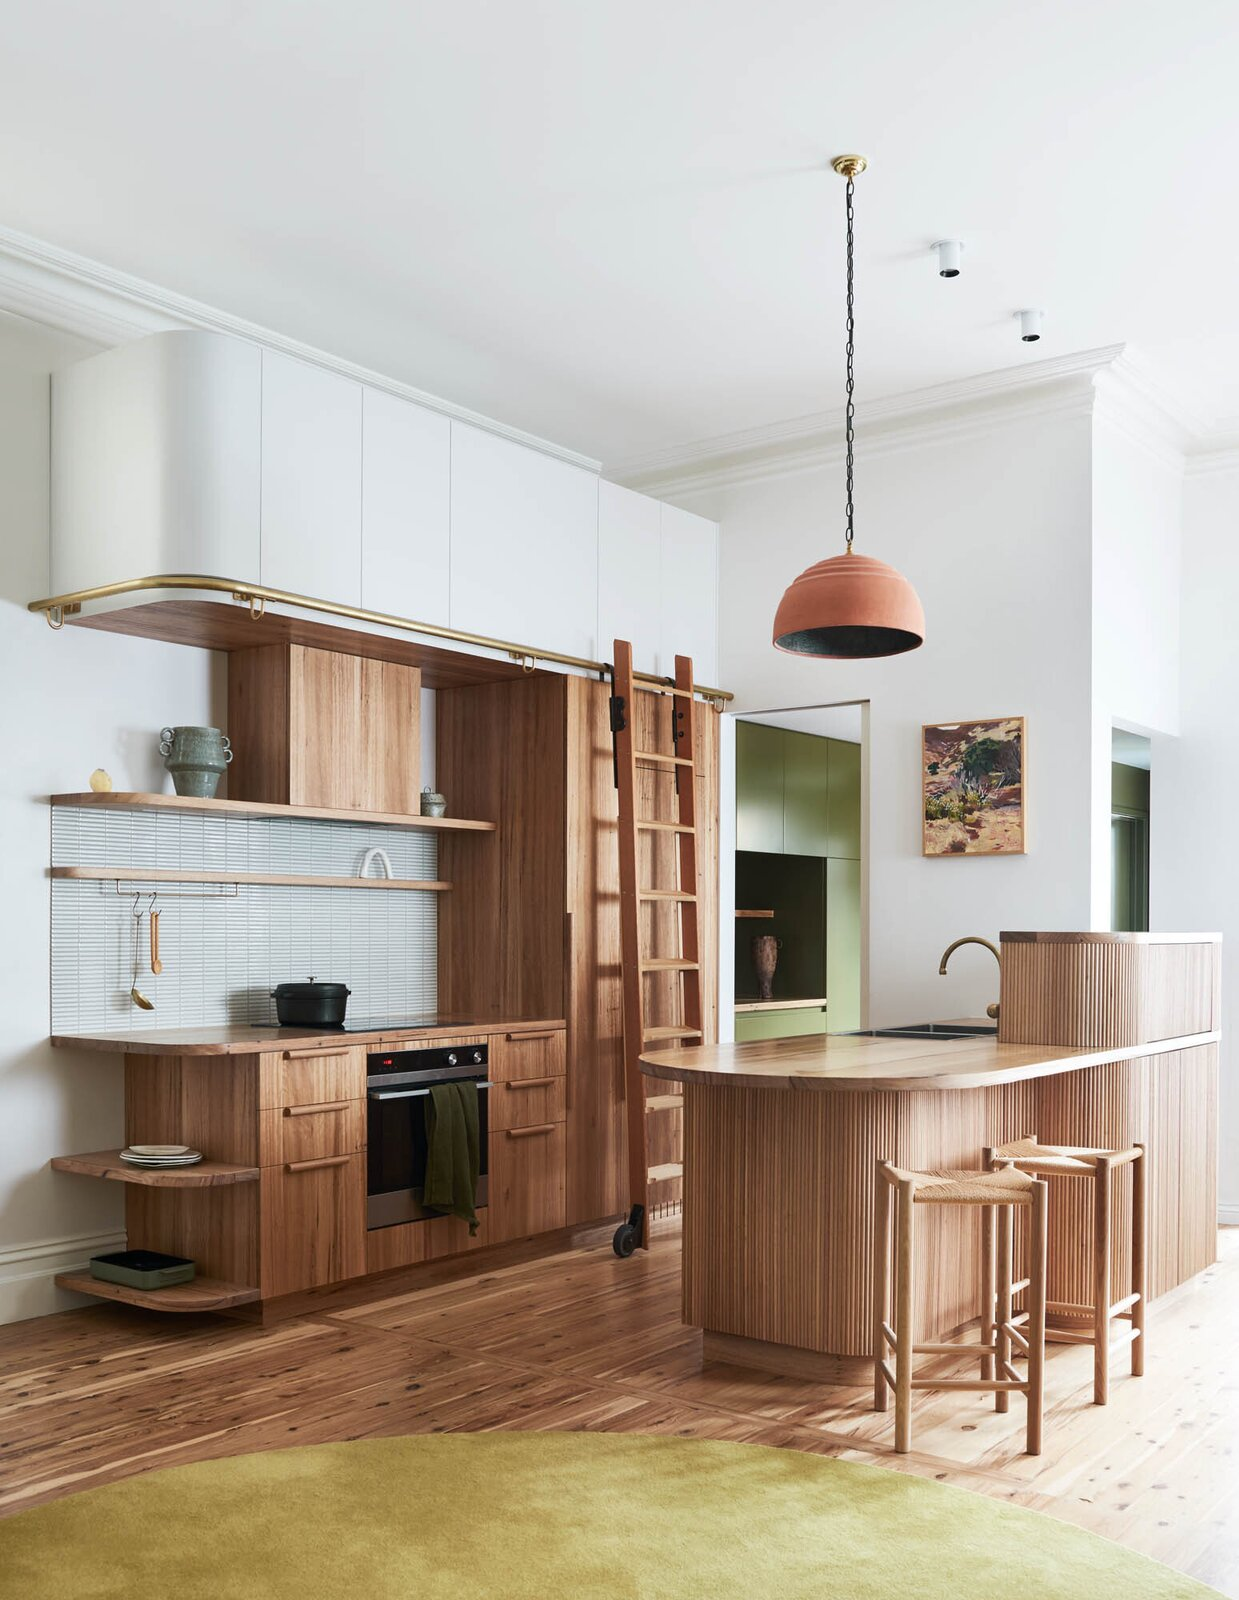 Kitchen, Wood Counter, Drop In Sink, Medium Hardwood Floor, Ceramic Tile Backsplashe, Cooktops, Pendant Lighting, Refrigerator, Wood Cabinet, and Wall Oven  Dwell's Favorite Photos from A Cramped Melbourne Victorian Gets an Earthy Refresh Inspired by the Australian Bush